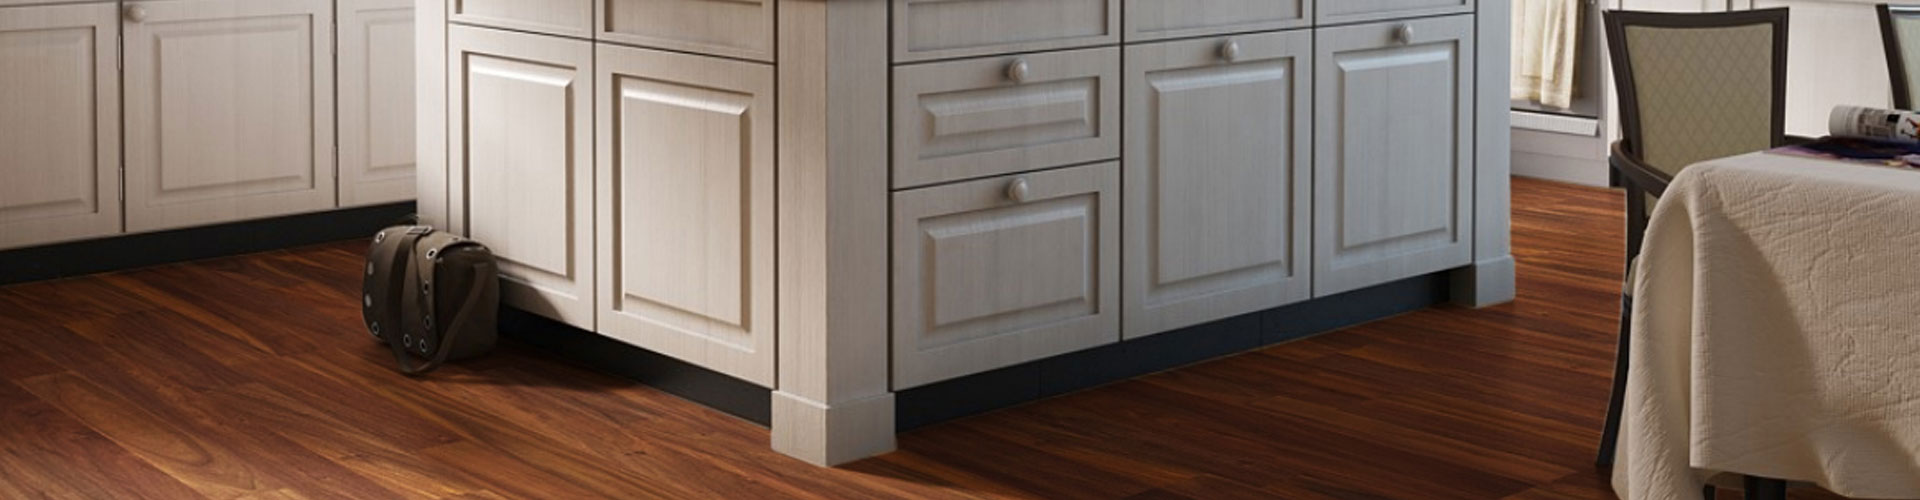 Quick Step Compact Floors Show The Beauty And Style Of Real Wood With